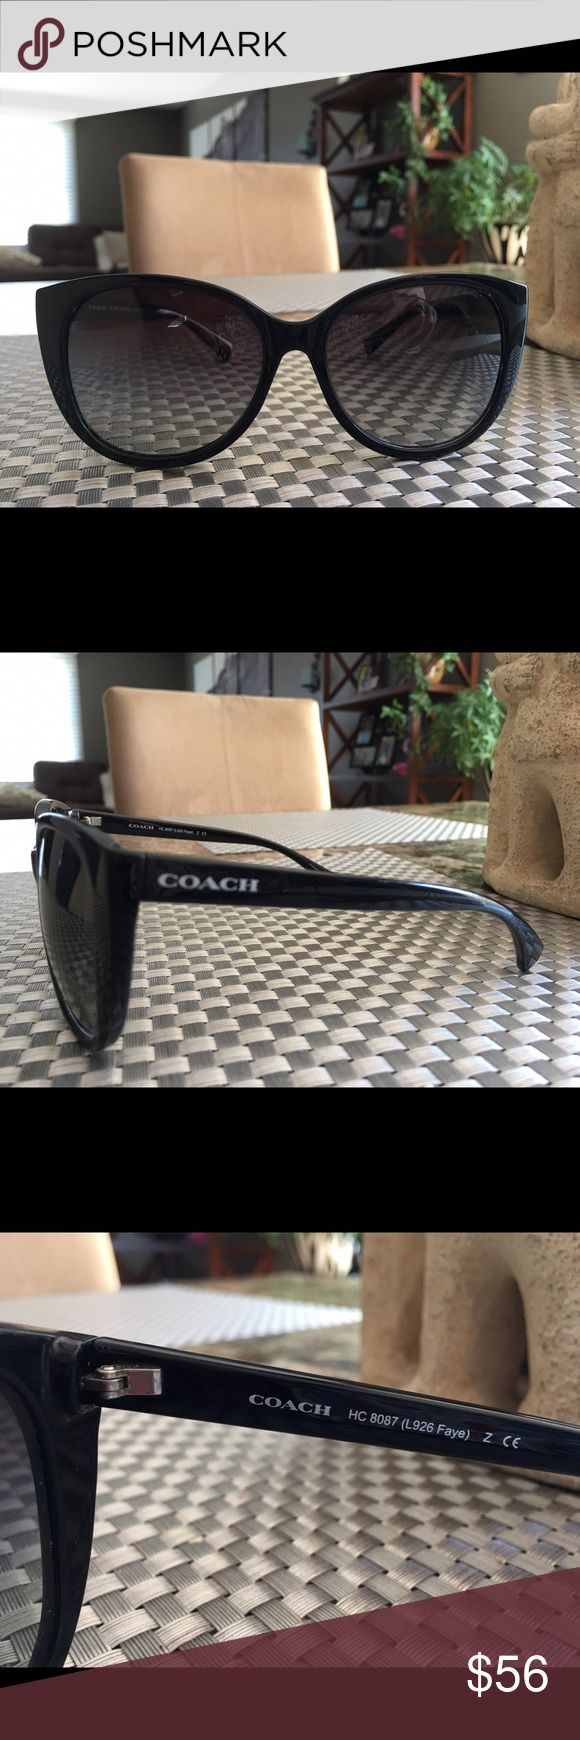 COACH Sunglasses 😎 Black cat like sunglasses authentic by Coach.  White Coach name on both arms.  A couple of tiny scratches on lenses, not bad at all.  Price reflects this.  Can not be seen on the outside when wearing.  Great looking pair of shades. Coach Accessories Sunglasses